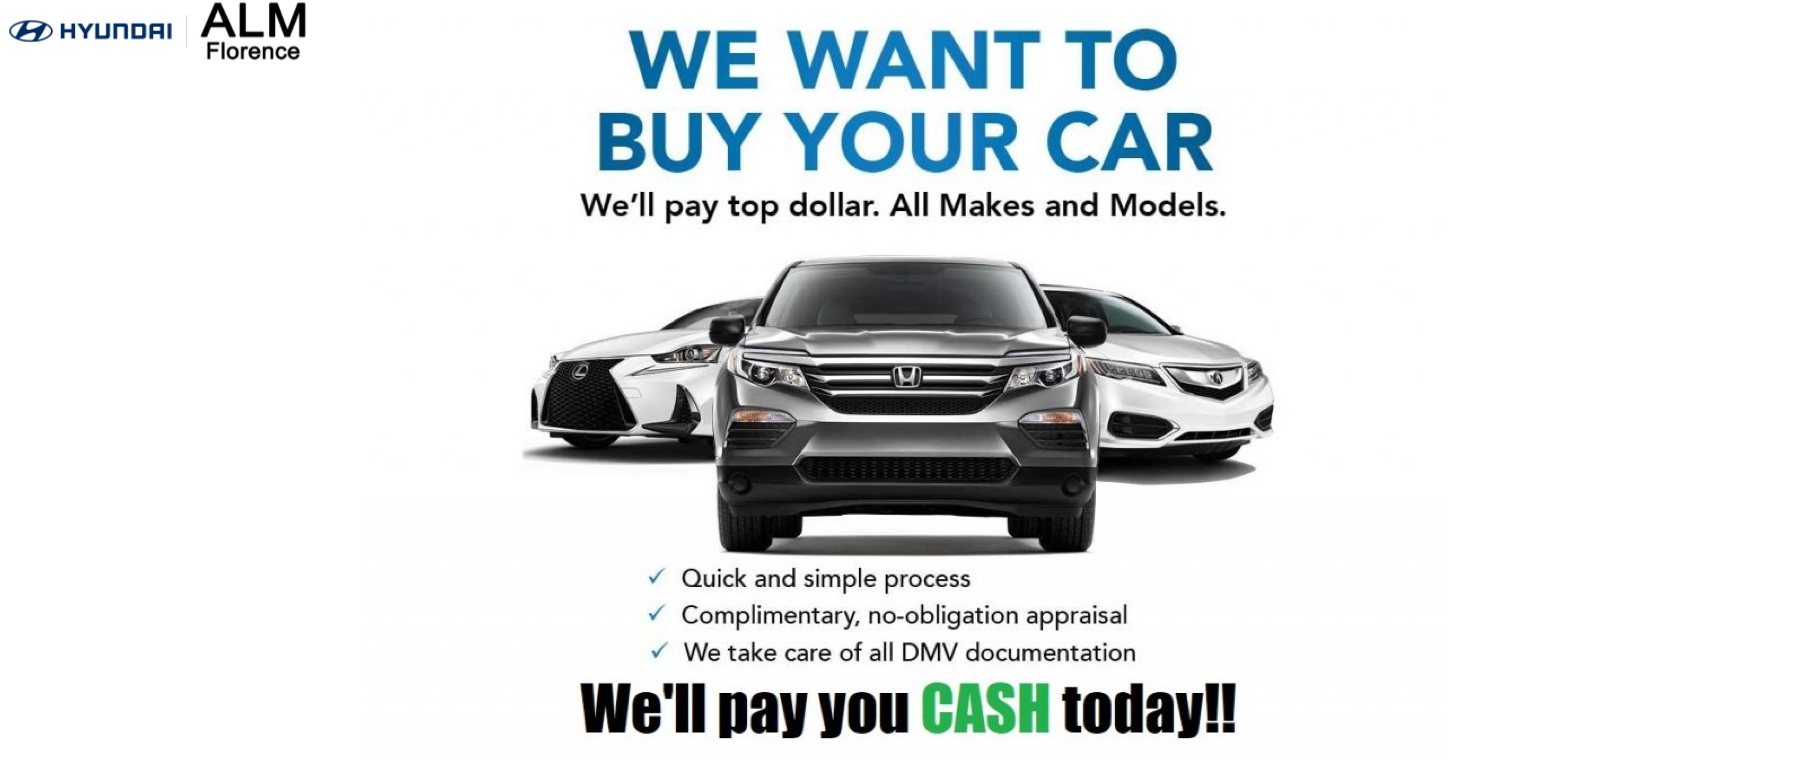 we-want-to-buy-your-car-v2